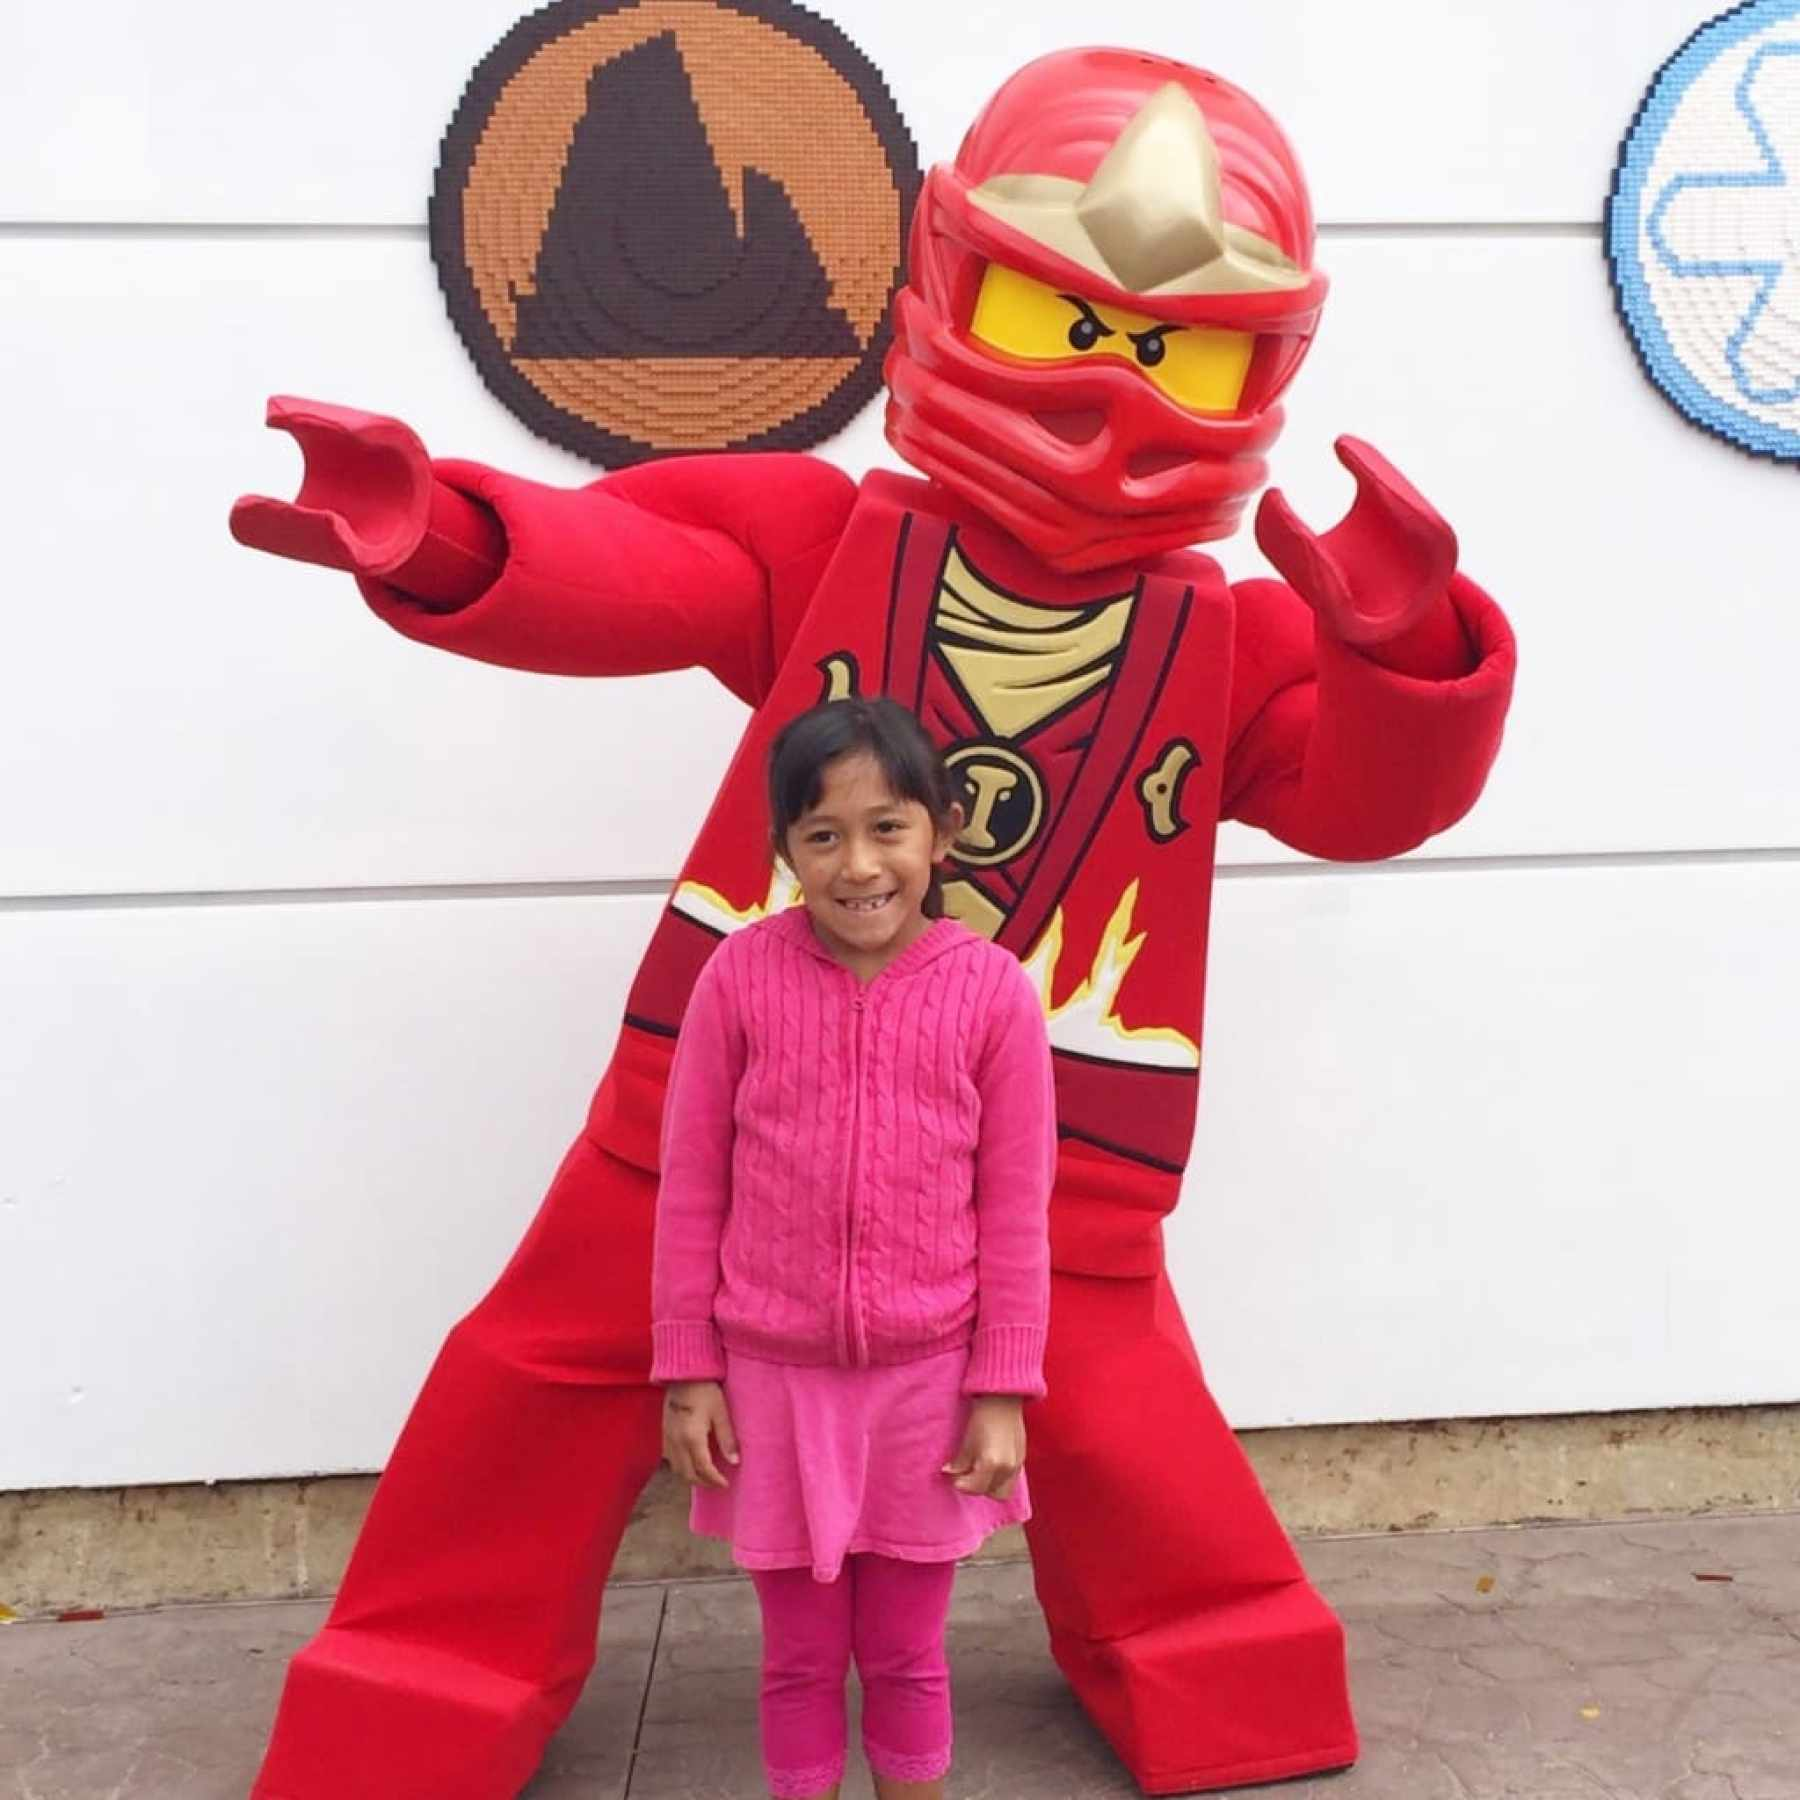 During NINJAGO The Ride at LEGOLAND California, guests officially train like a ninja and experience the new interactive 4D ride, which is the first in North America to enable guests to control the outcome of their adventure just by using their hands.